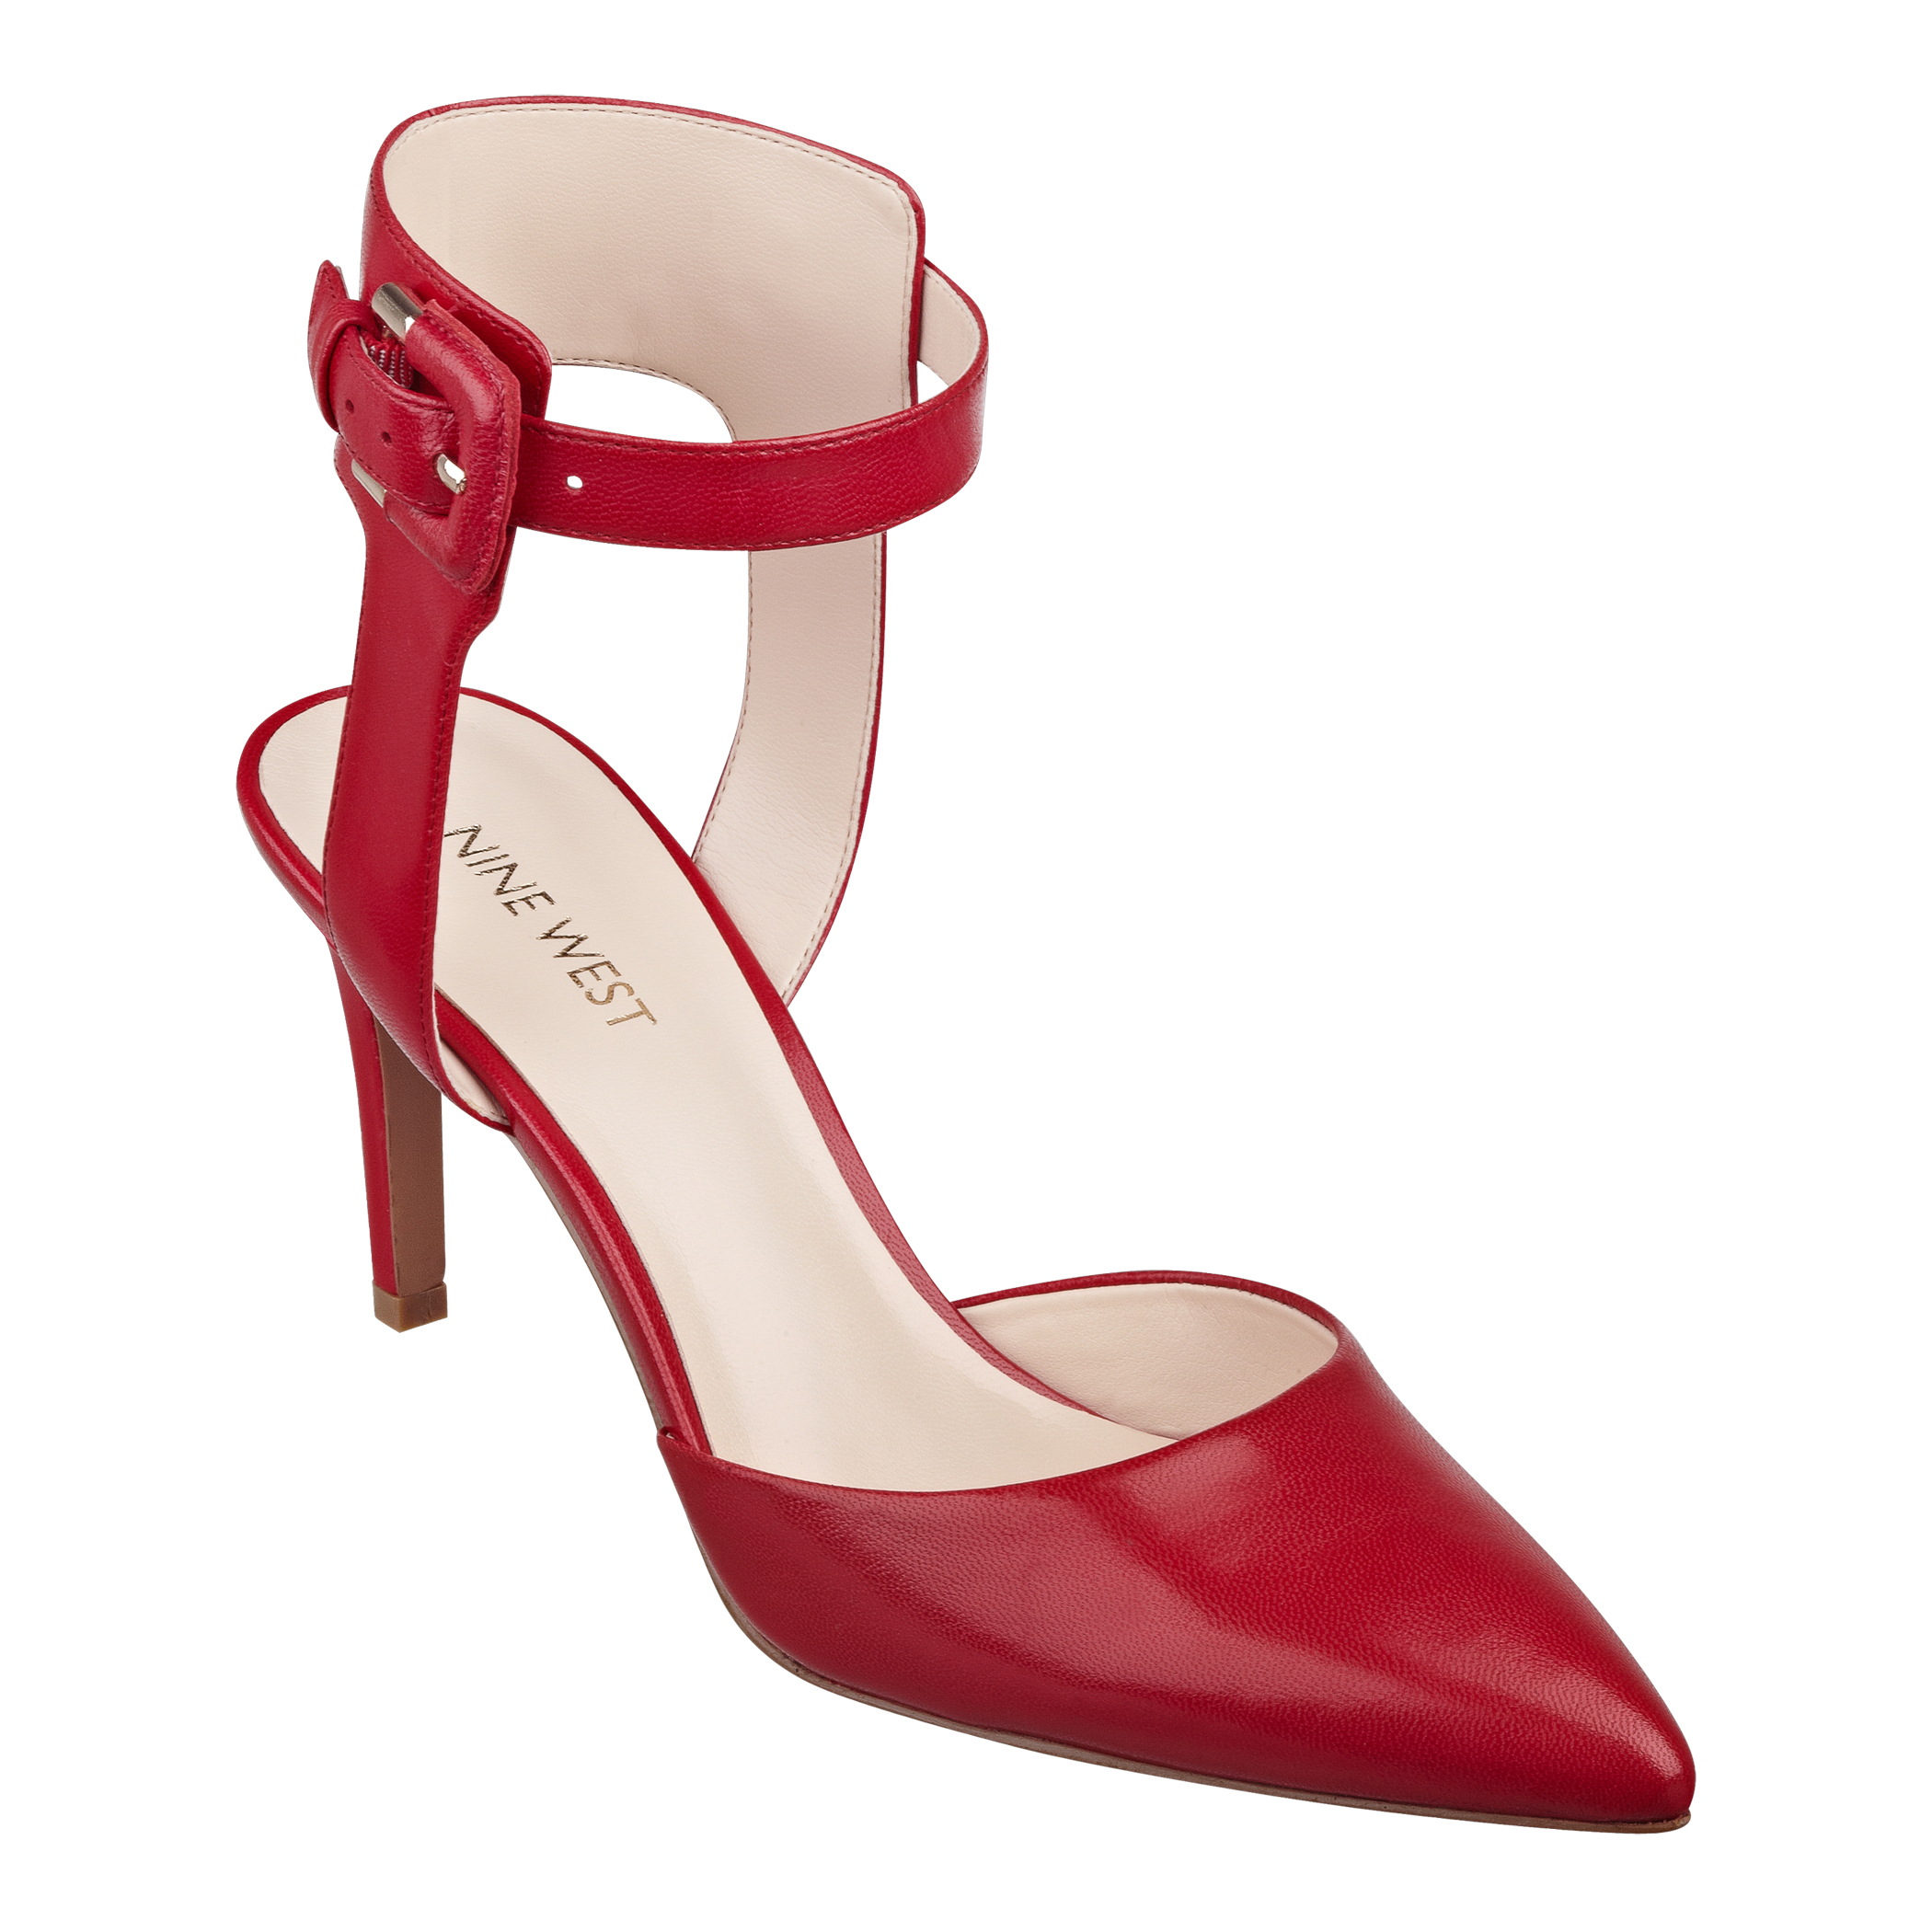 Latest Fashion of Stiletto & Heels Collection for women by Nine West(5)